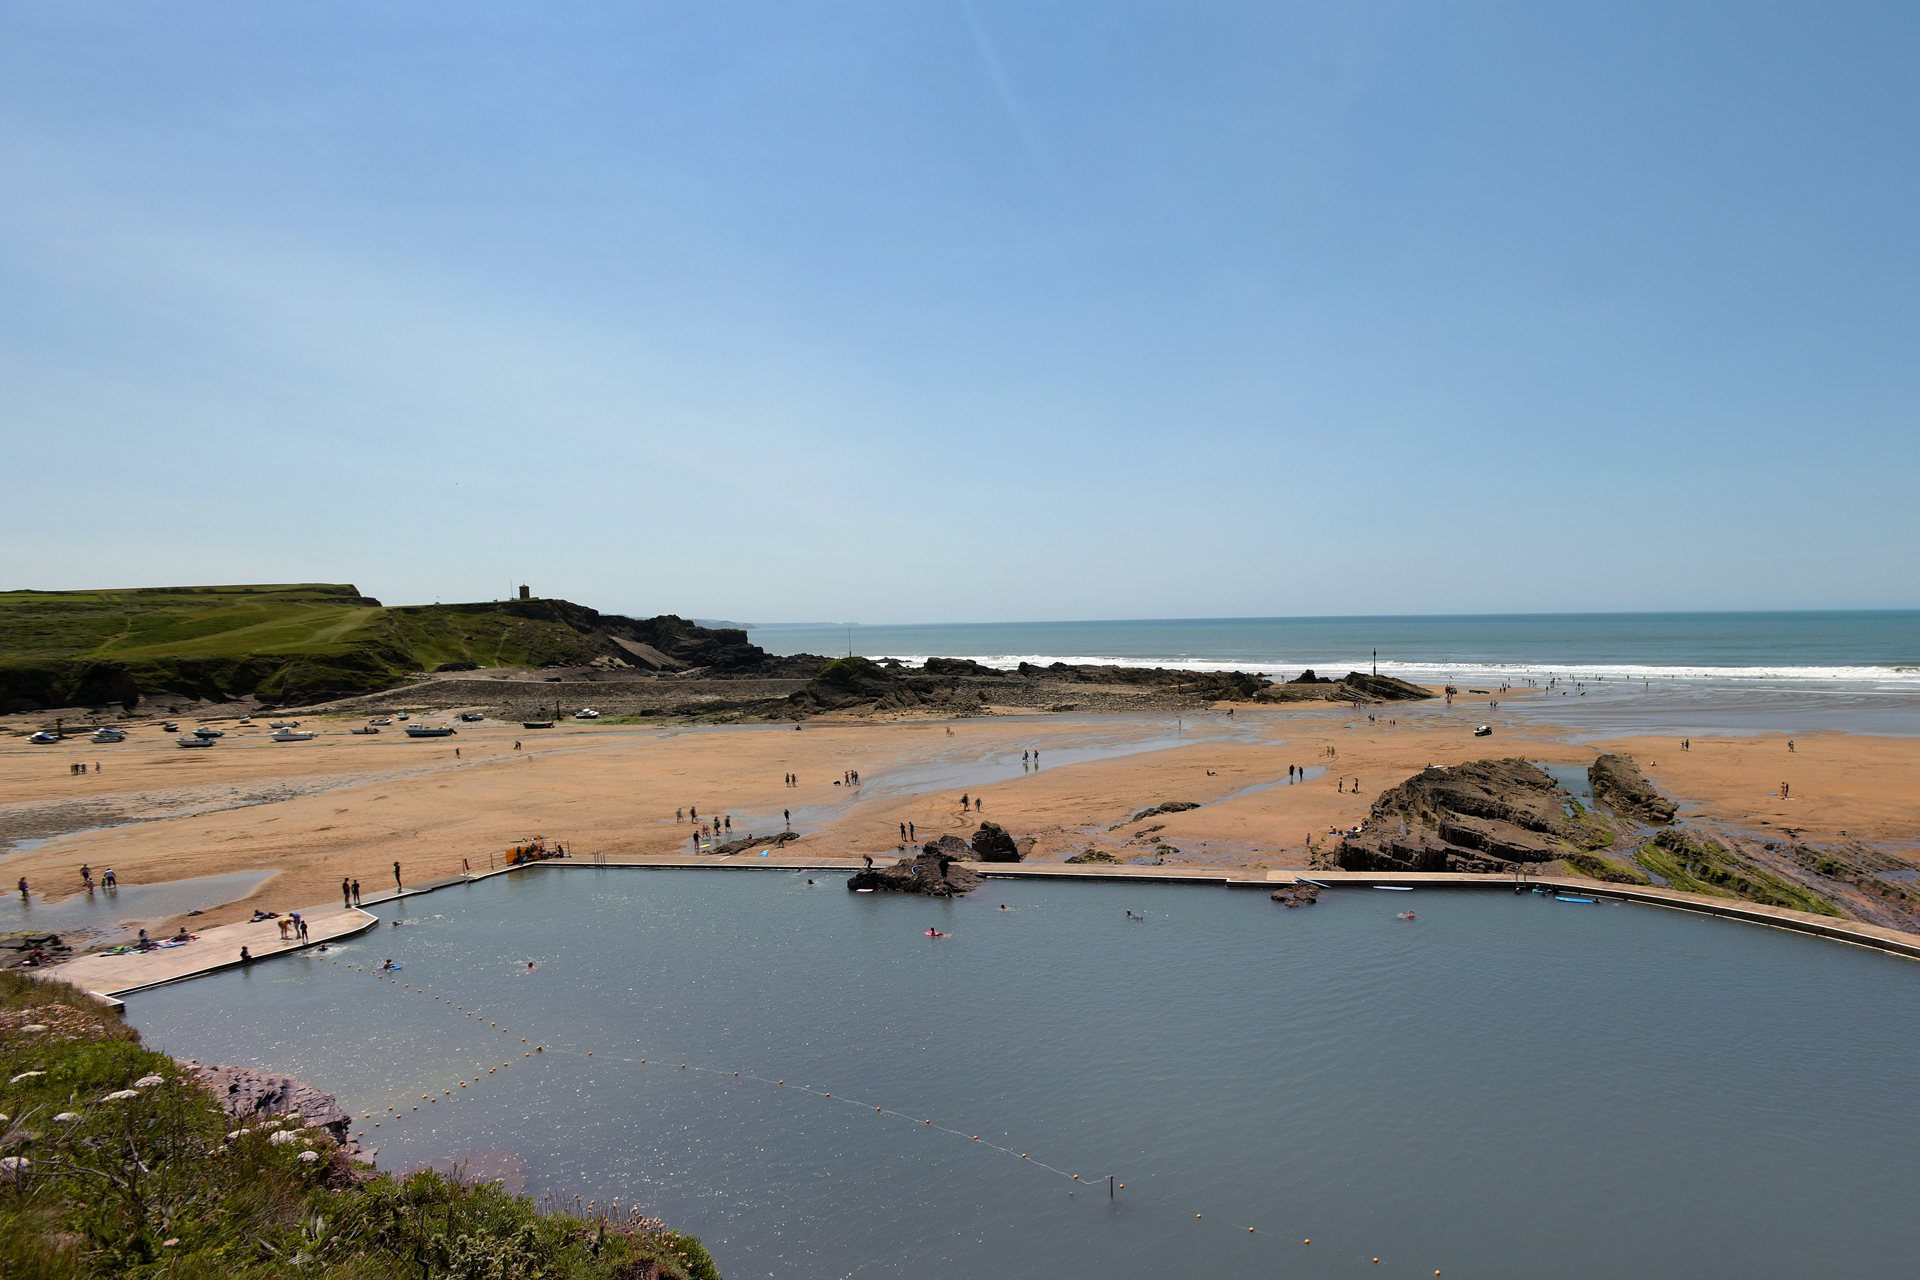 Take a dip in Bude sea pool on Summerlease beach